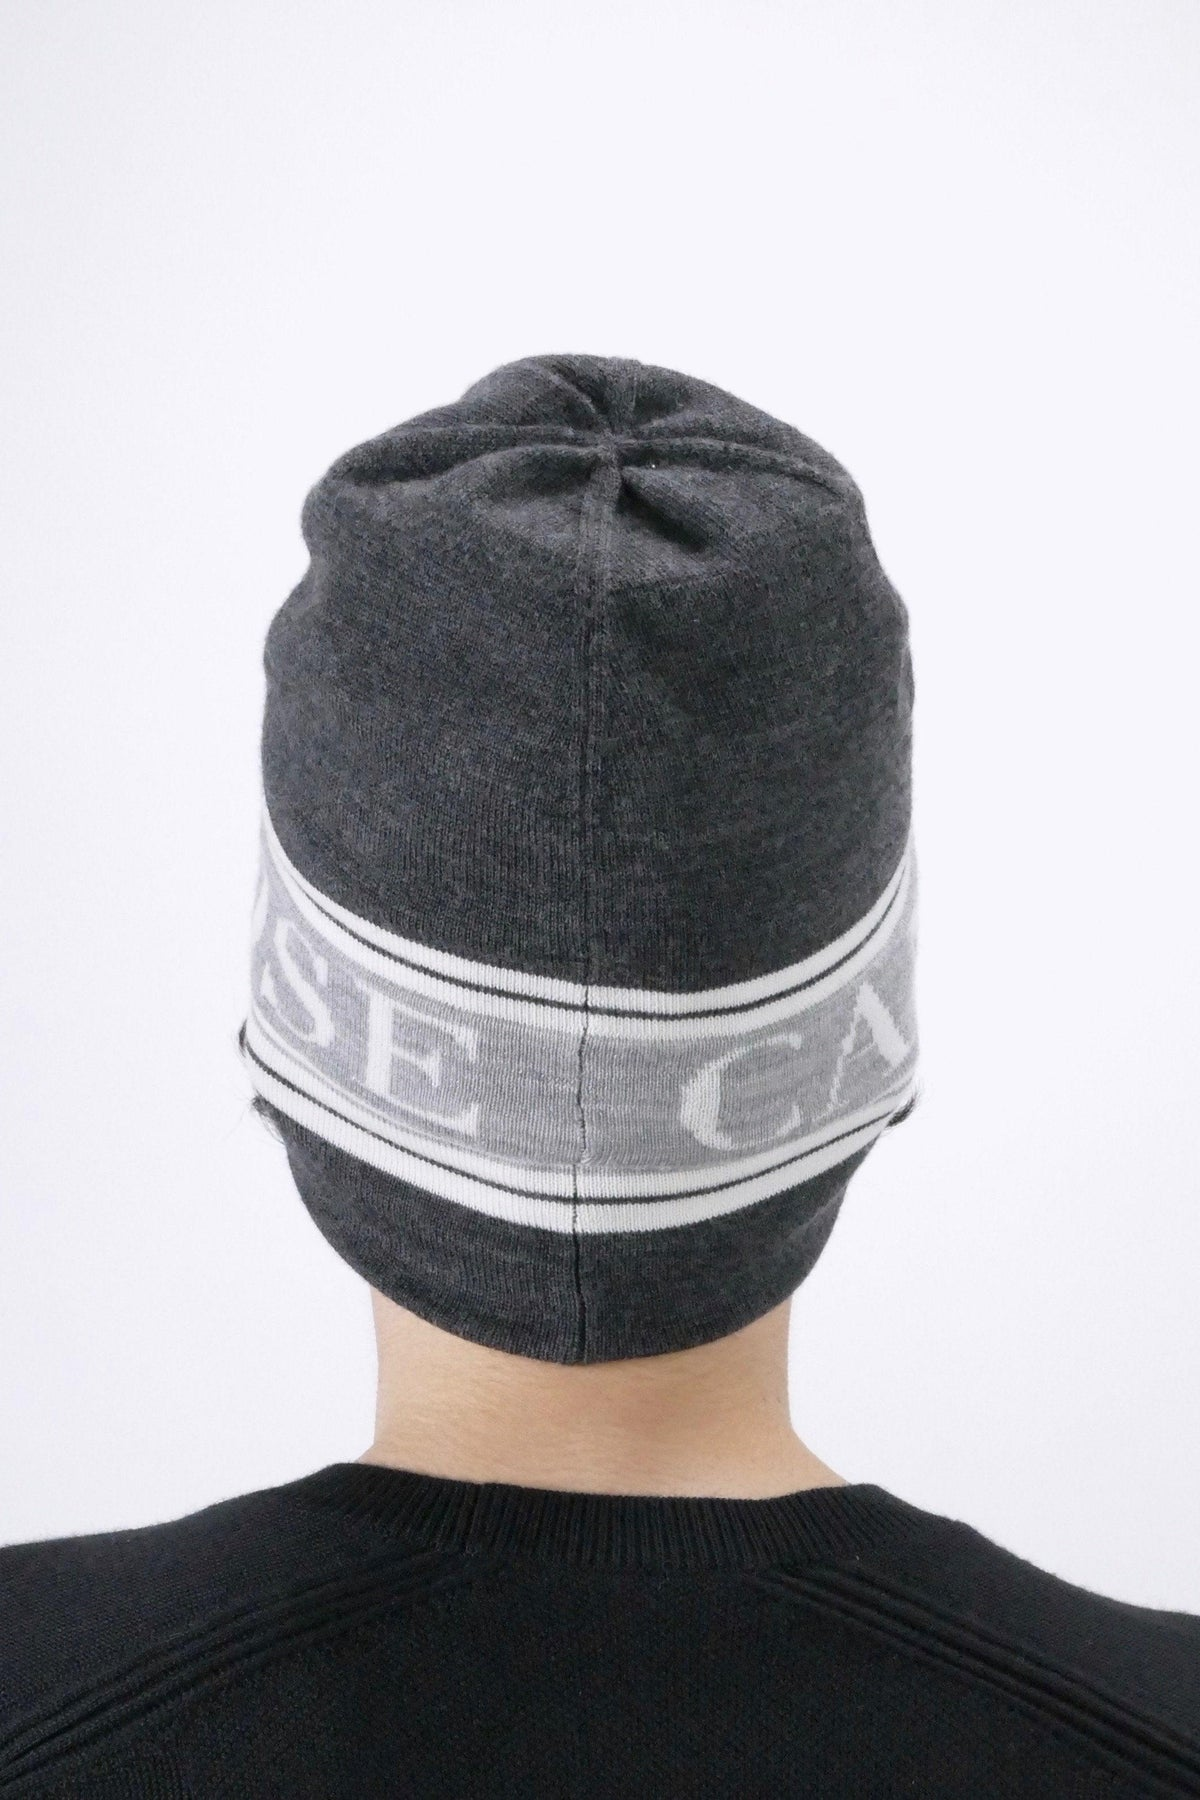 Canada Goose Mens Winter Accessories - Hats - Training Beanie - Iron Grey